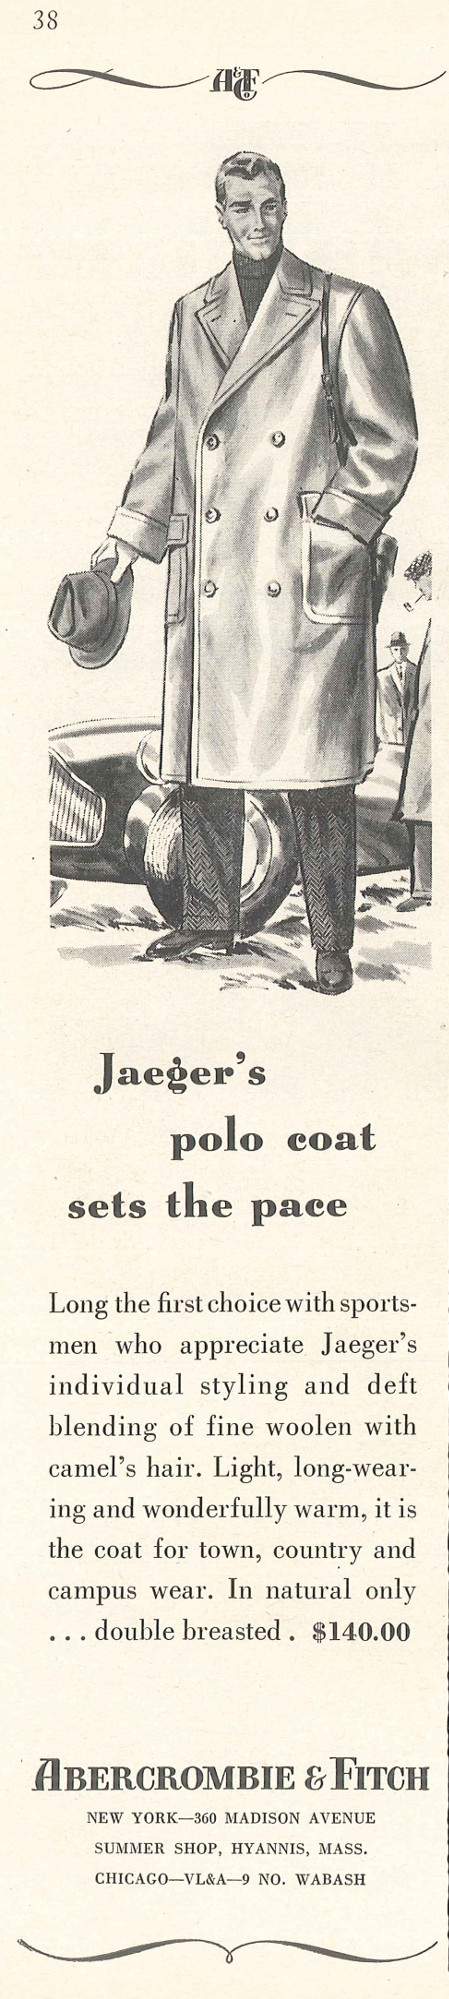 Abercrombie & Fitch: Jaeger's polo coat sets the pace - The New Yorker, 31 août 1957